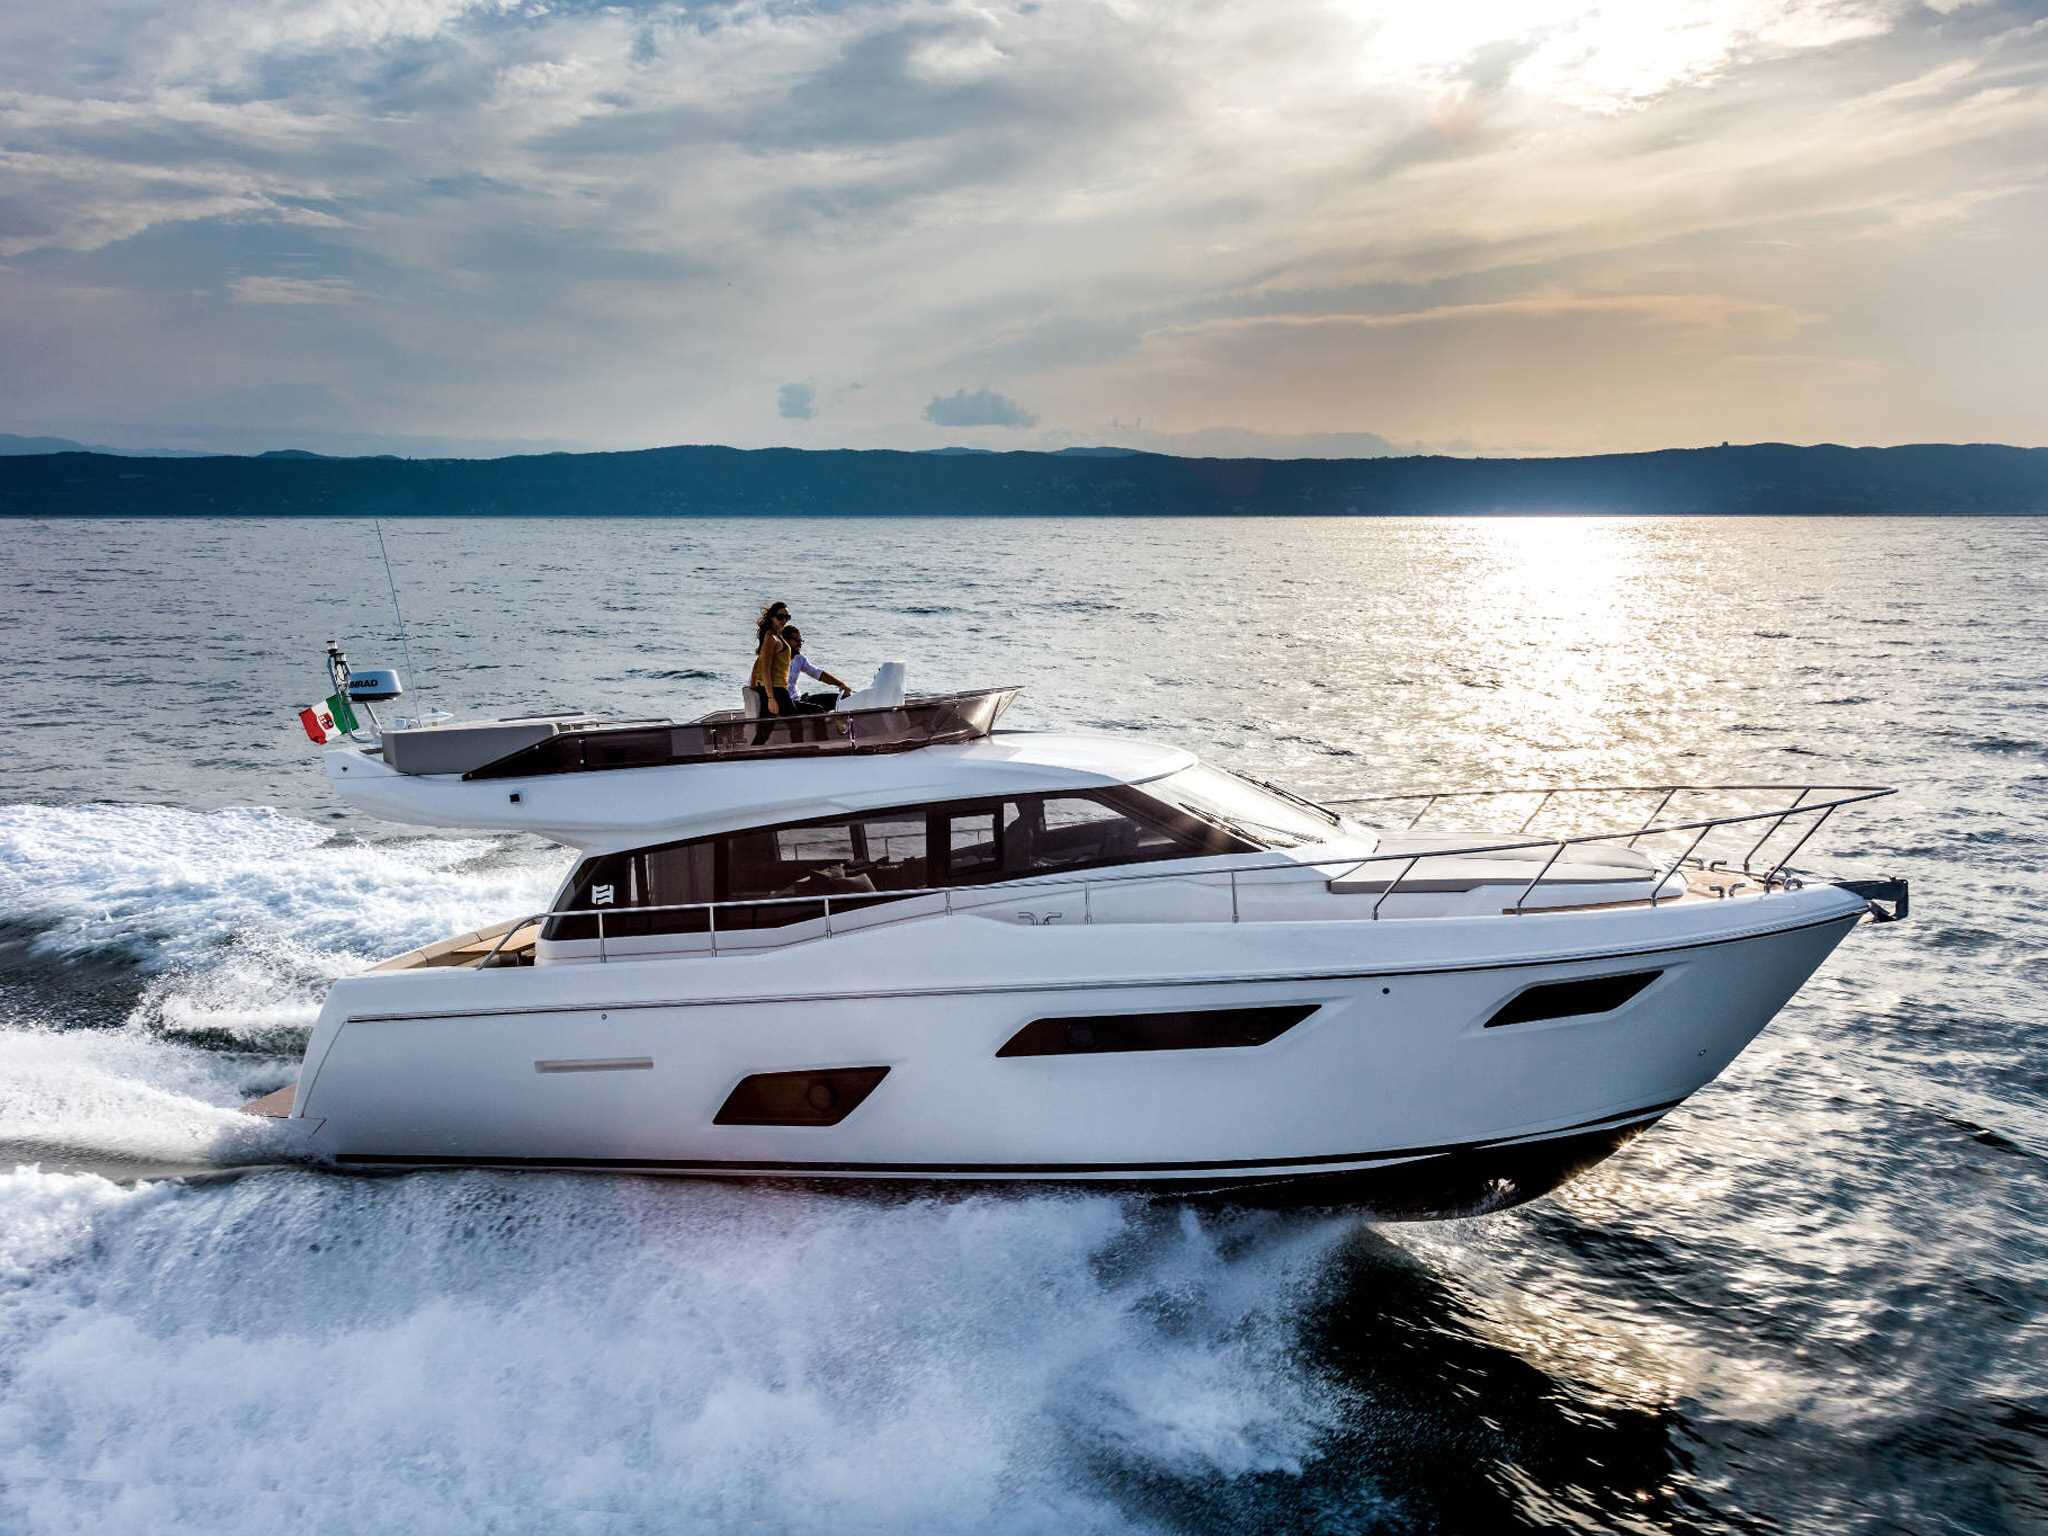 ferretti yachts 450 ferretti group JMA Yachting Port Fréjus Var vente location neuf occasion places de port